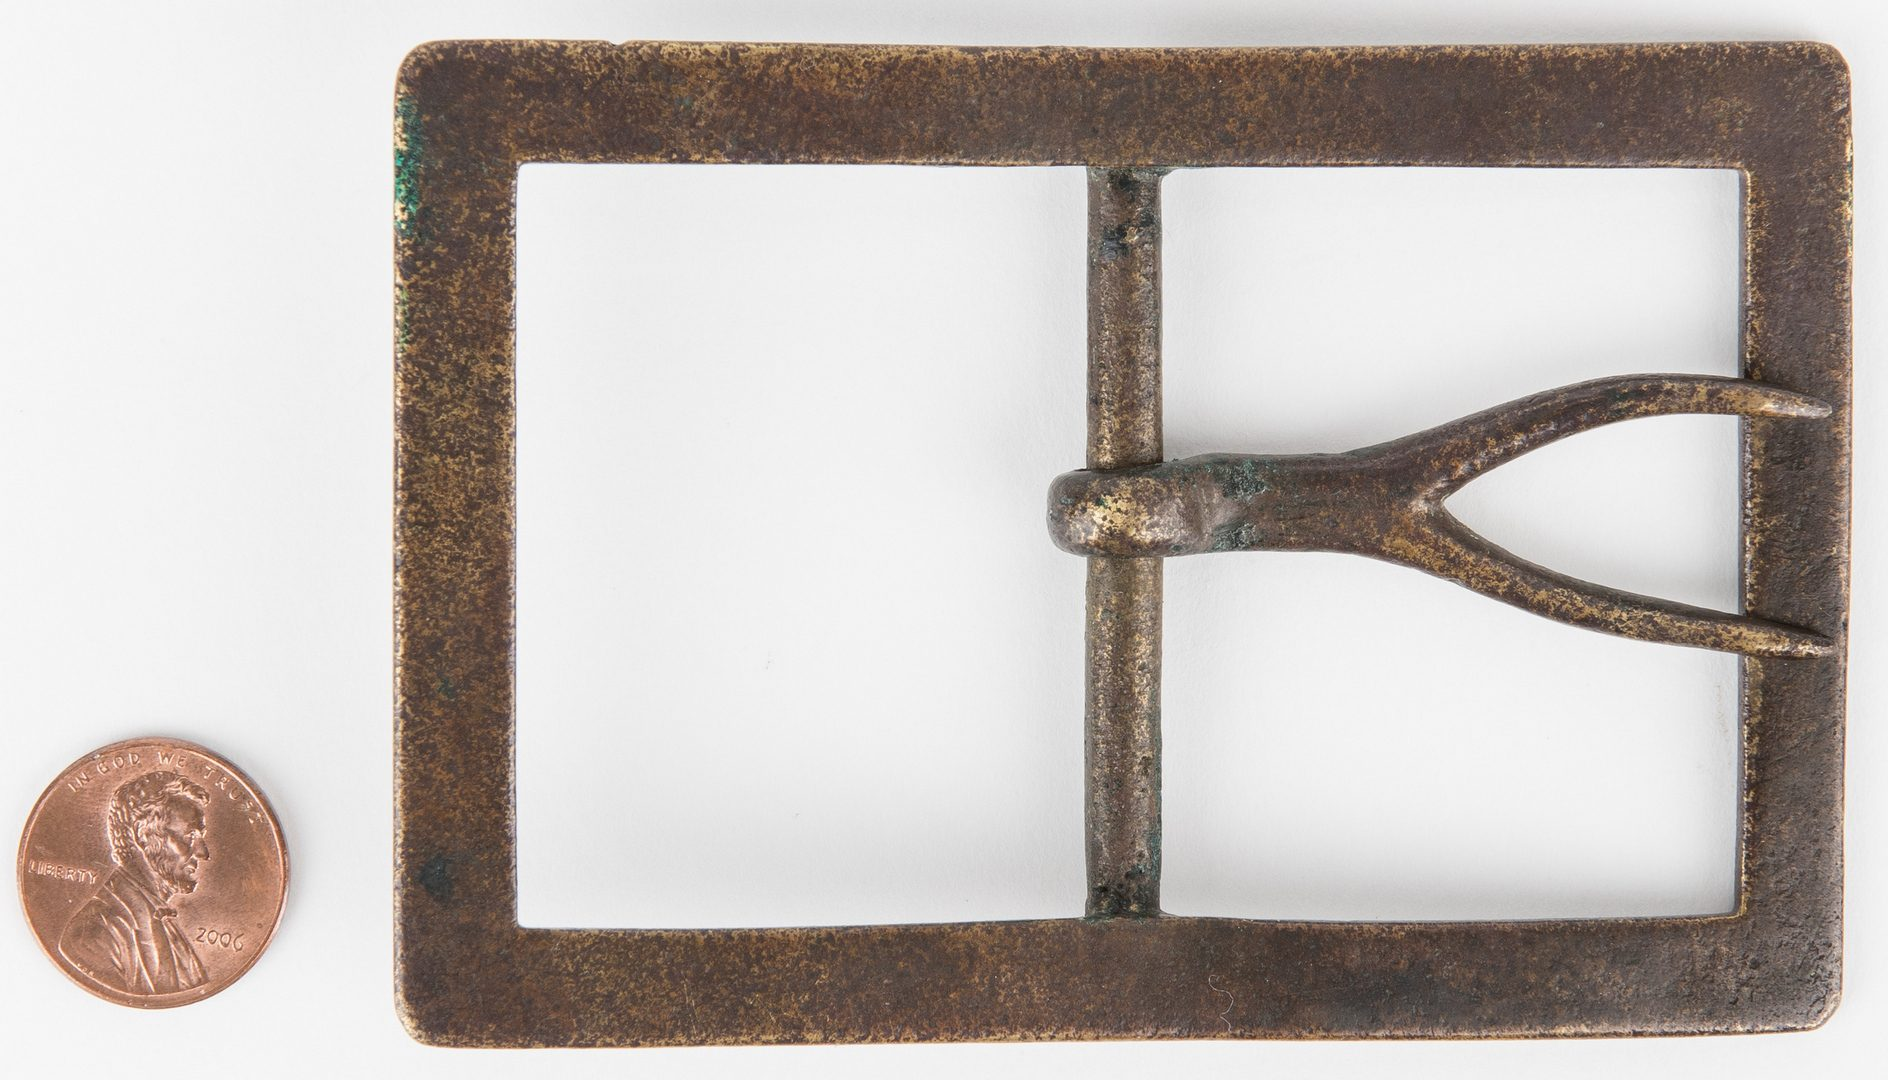 Lot 273: 2 Confederate Frame Buckles, incl. Forked Tongue, Beveled Edge